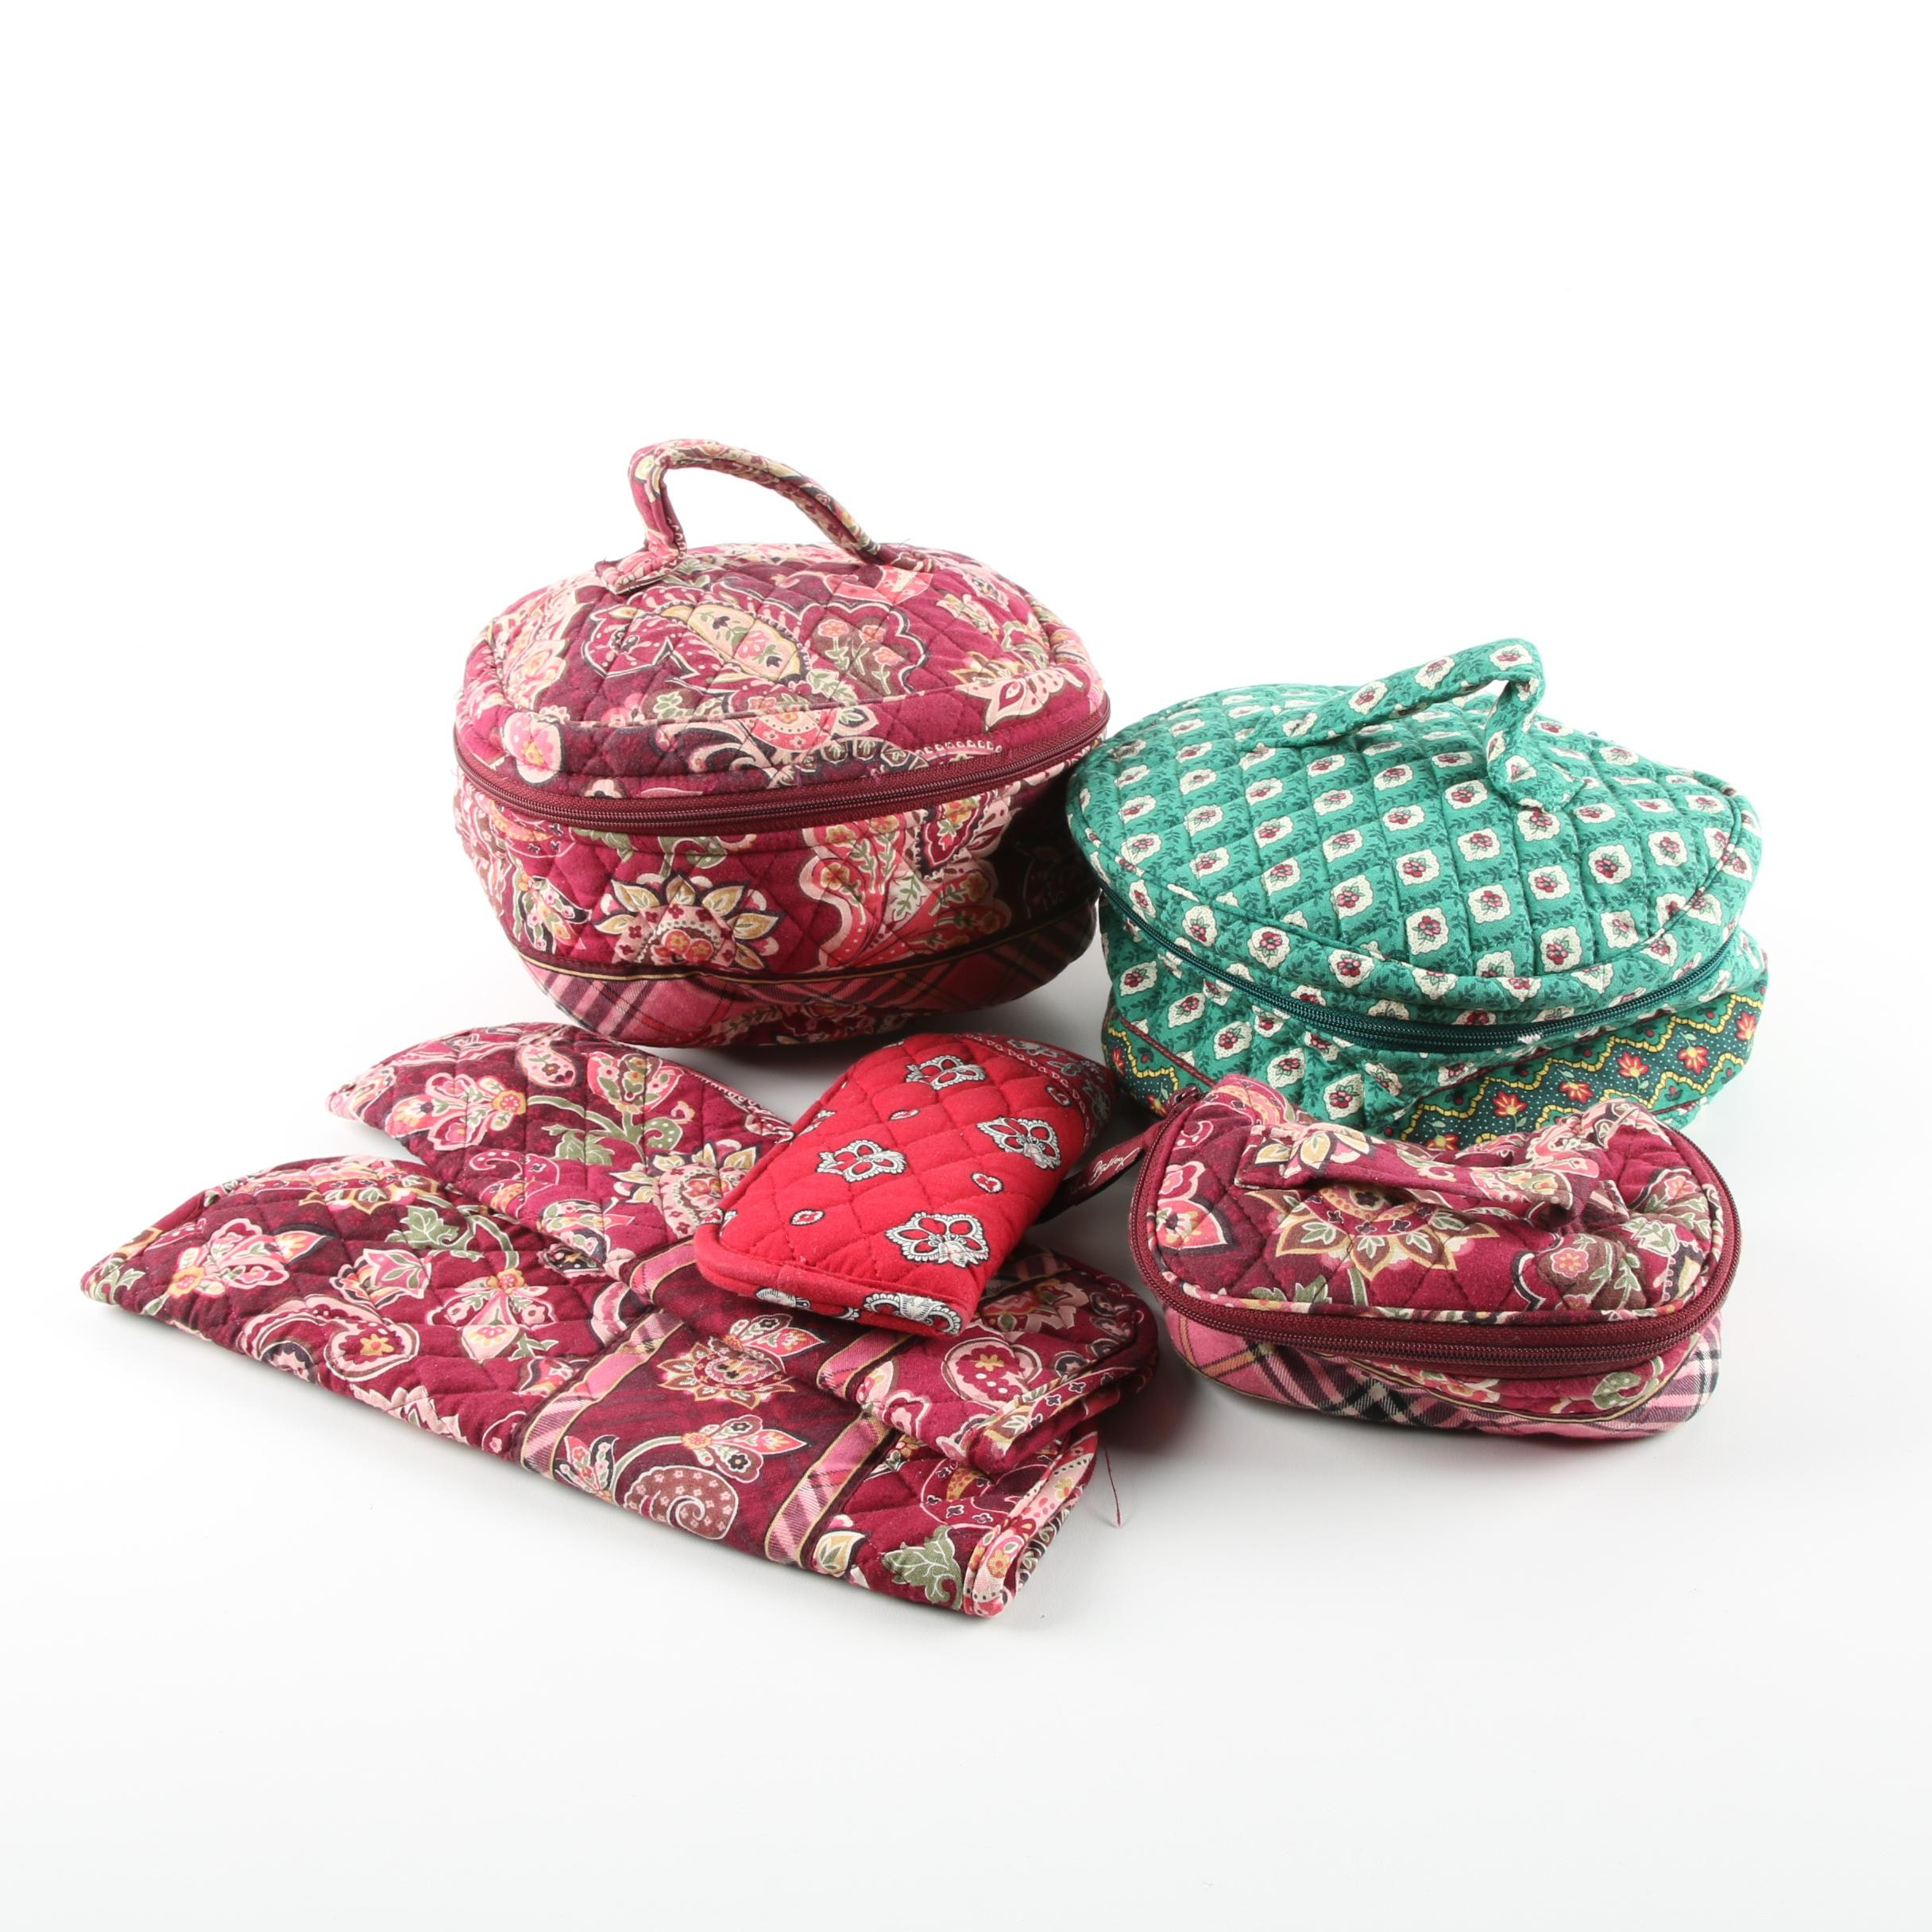 Vera Bradley Retired Pattern Quilted Cosmetic Bags and Accessories